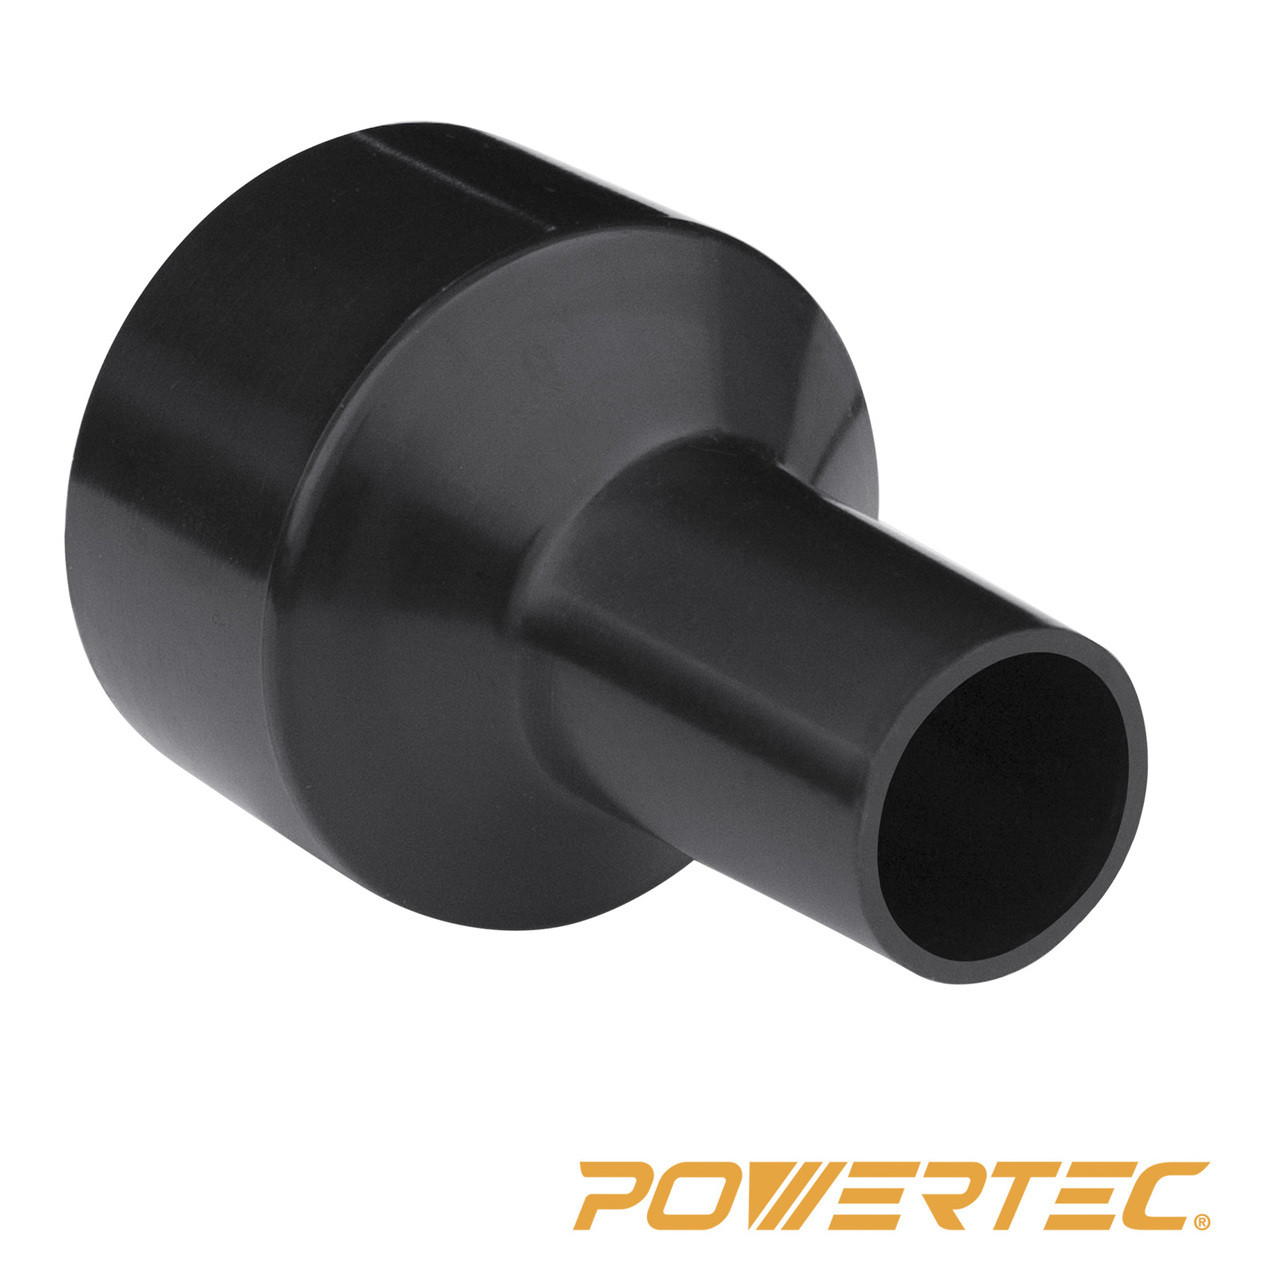 Inch to reducer powertec